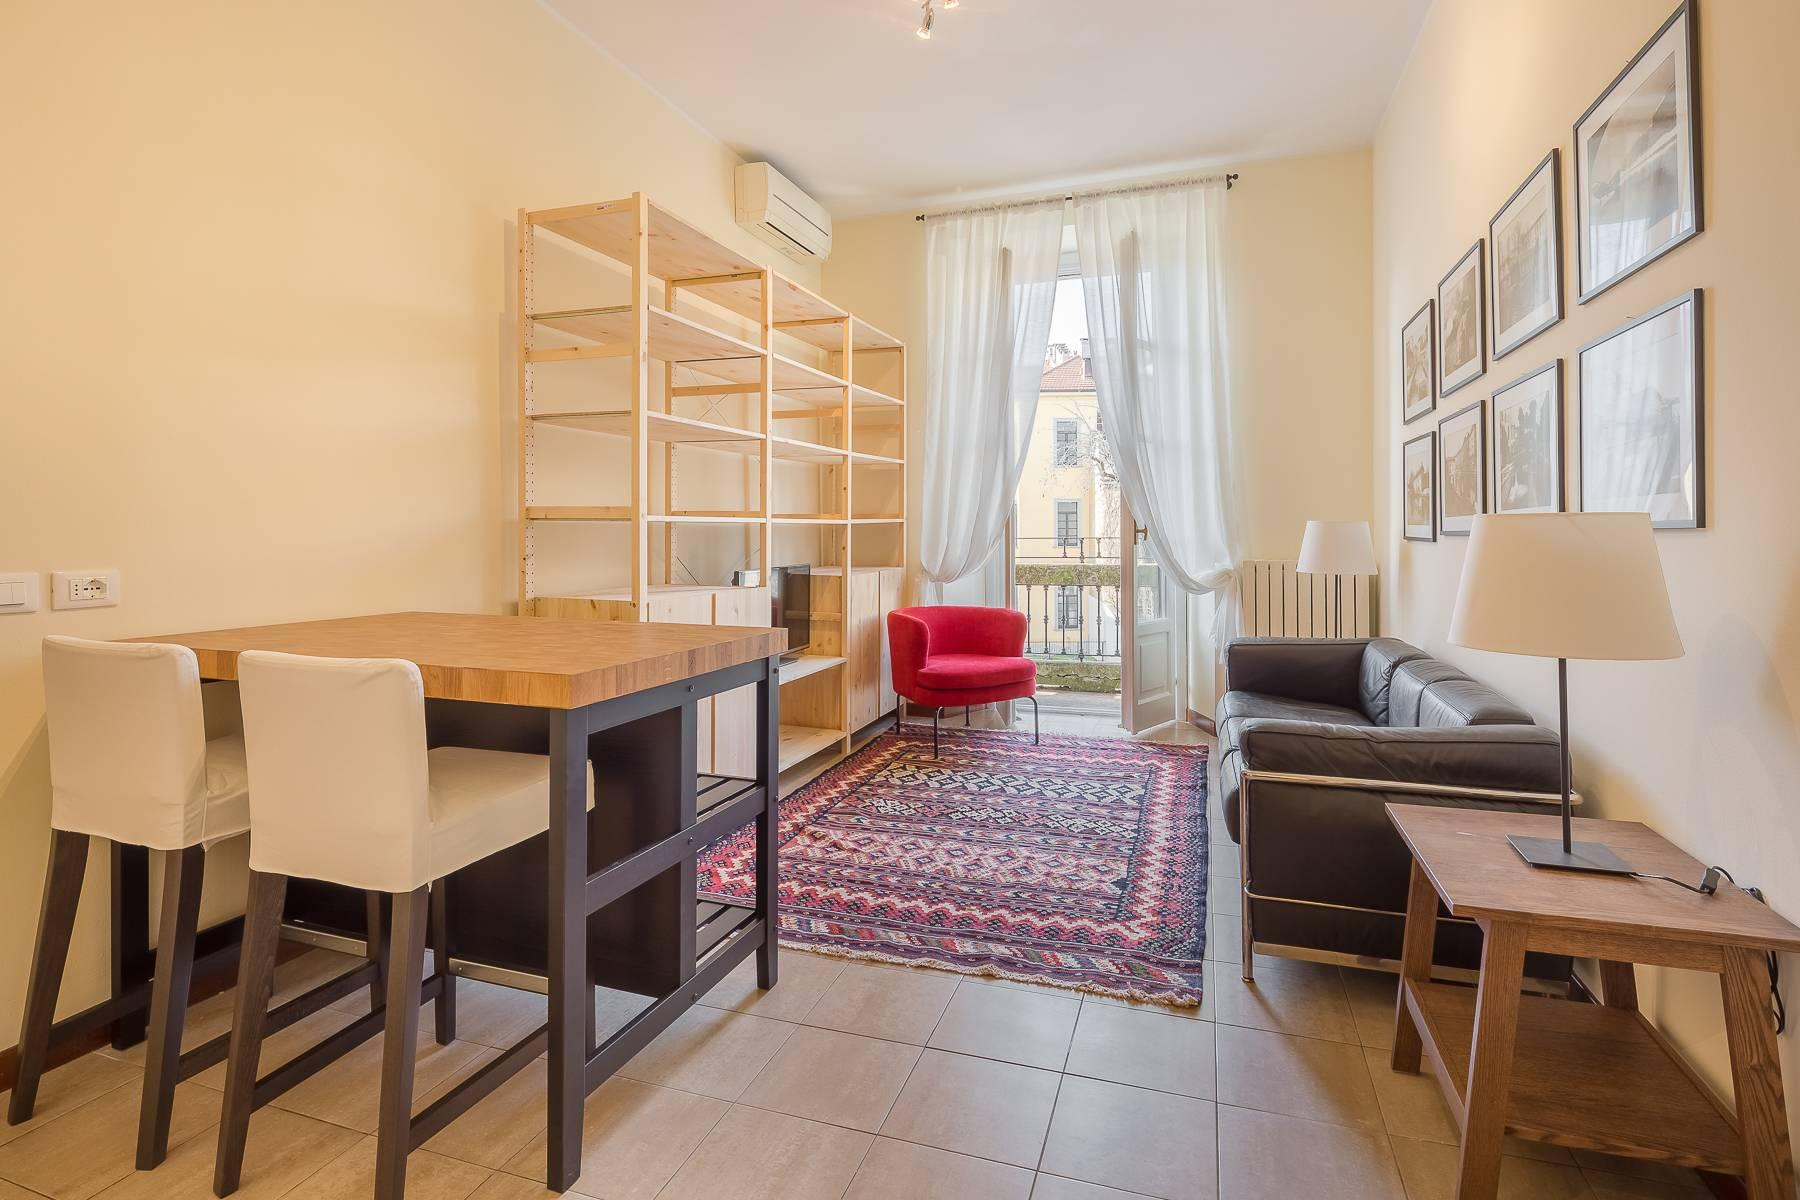 Delightful furnished apartment for rent in Via San Marco - 5